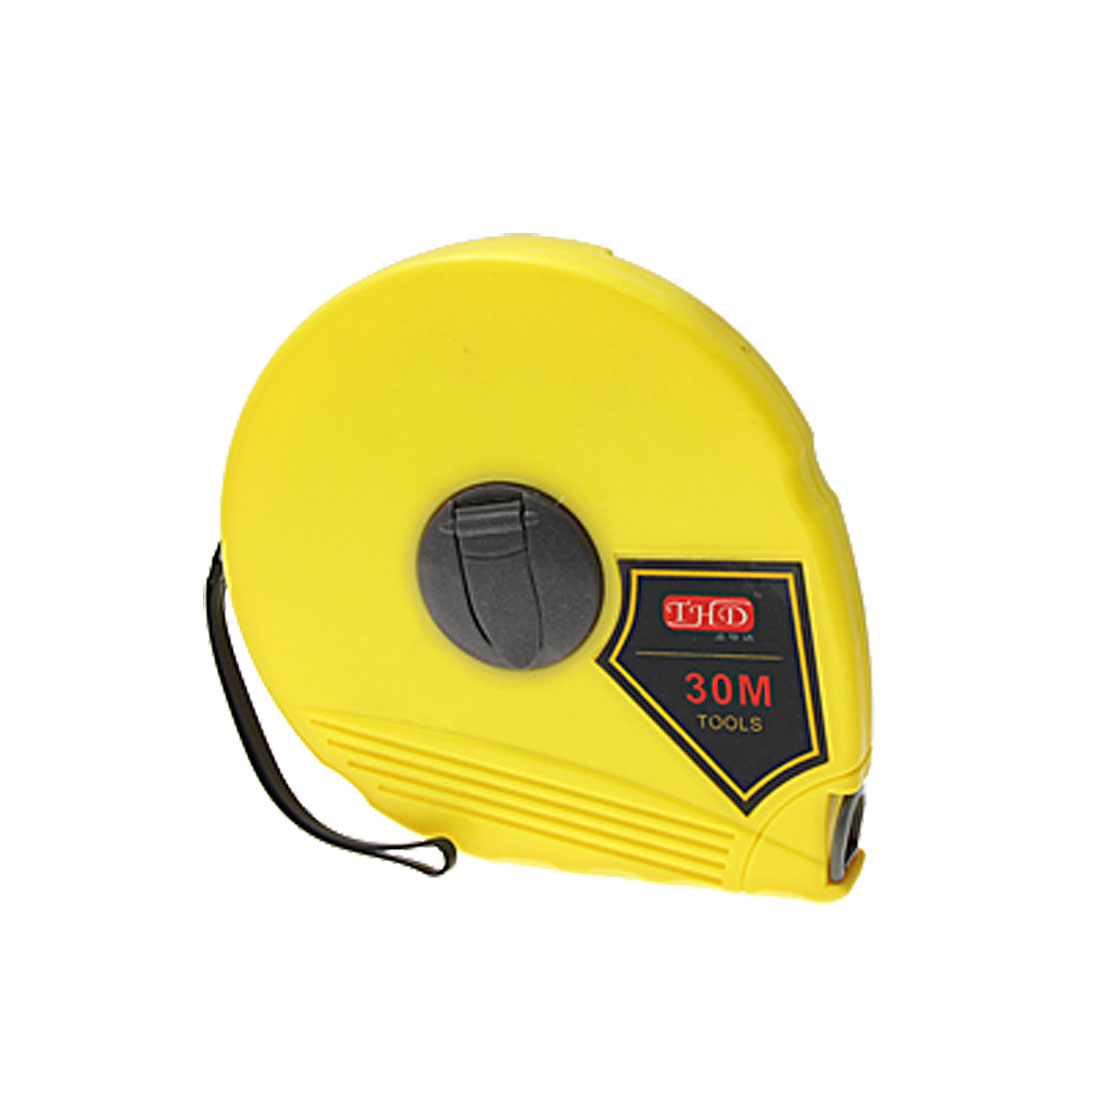 30m Long Yellow Measuring Tool Retractable Tape Measure for Surveyors